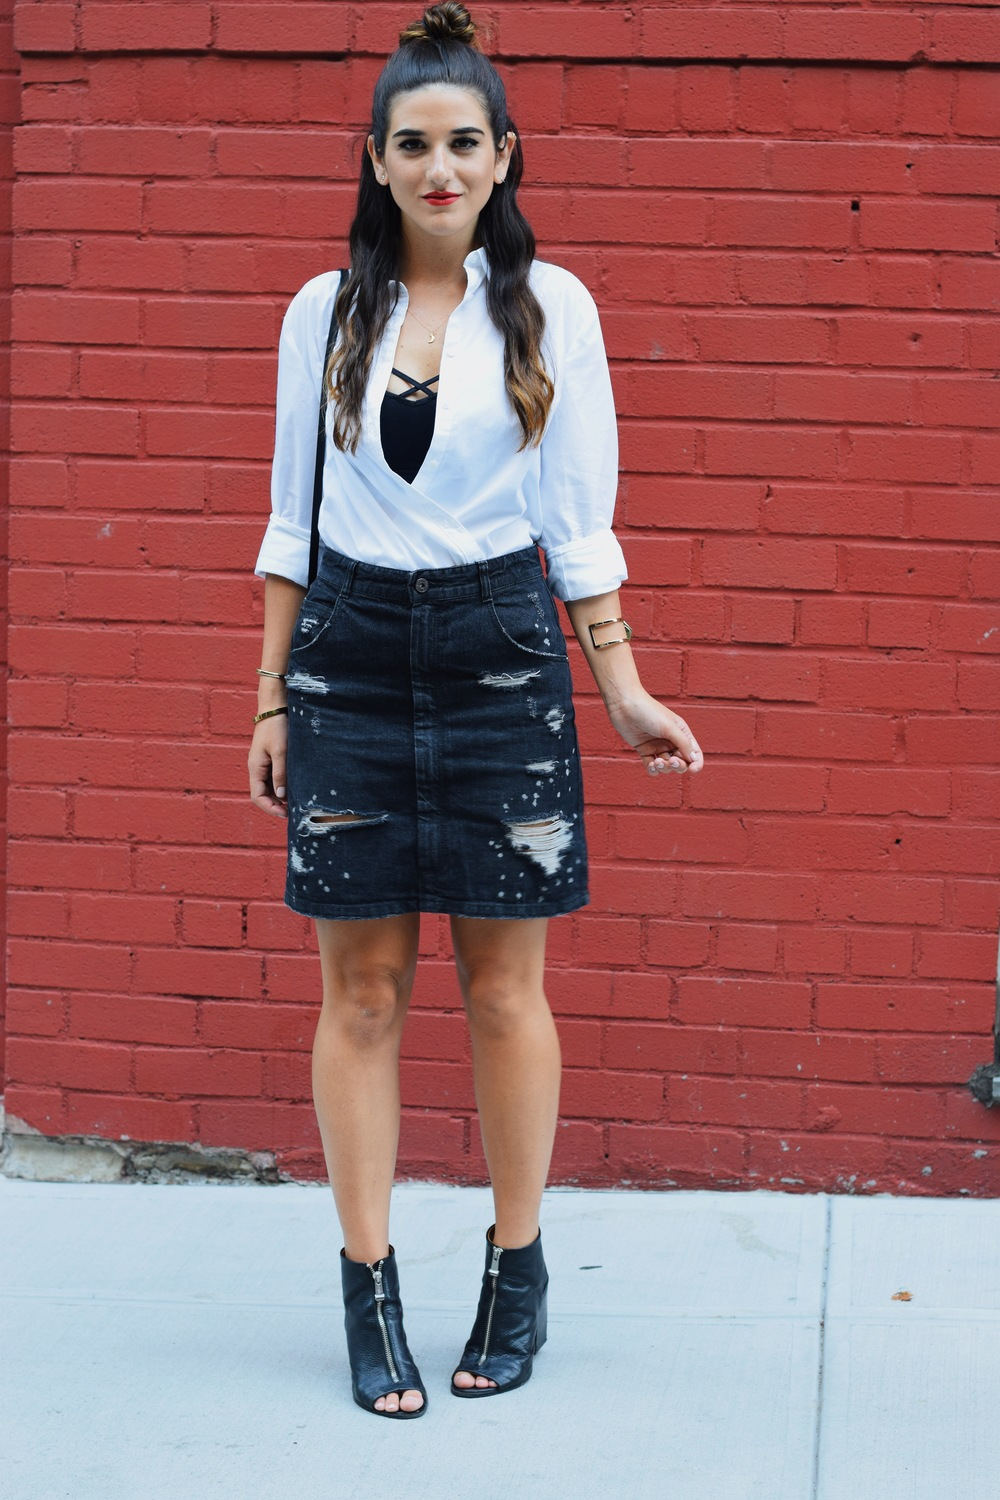 Coco & Marie Moon Necklace Giveaway Louboutins & Love Fashion Blog Esther Santer NYC Street Style Blogger Lifestyle Topknot Bun Denim Ripped Jean Skirt White Button Down Zara Black Box Clutch Bag Bralette Nordstrom Booties Gold Jewelry Girl Women Shop.JPG